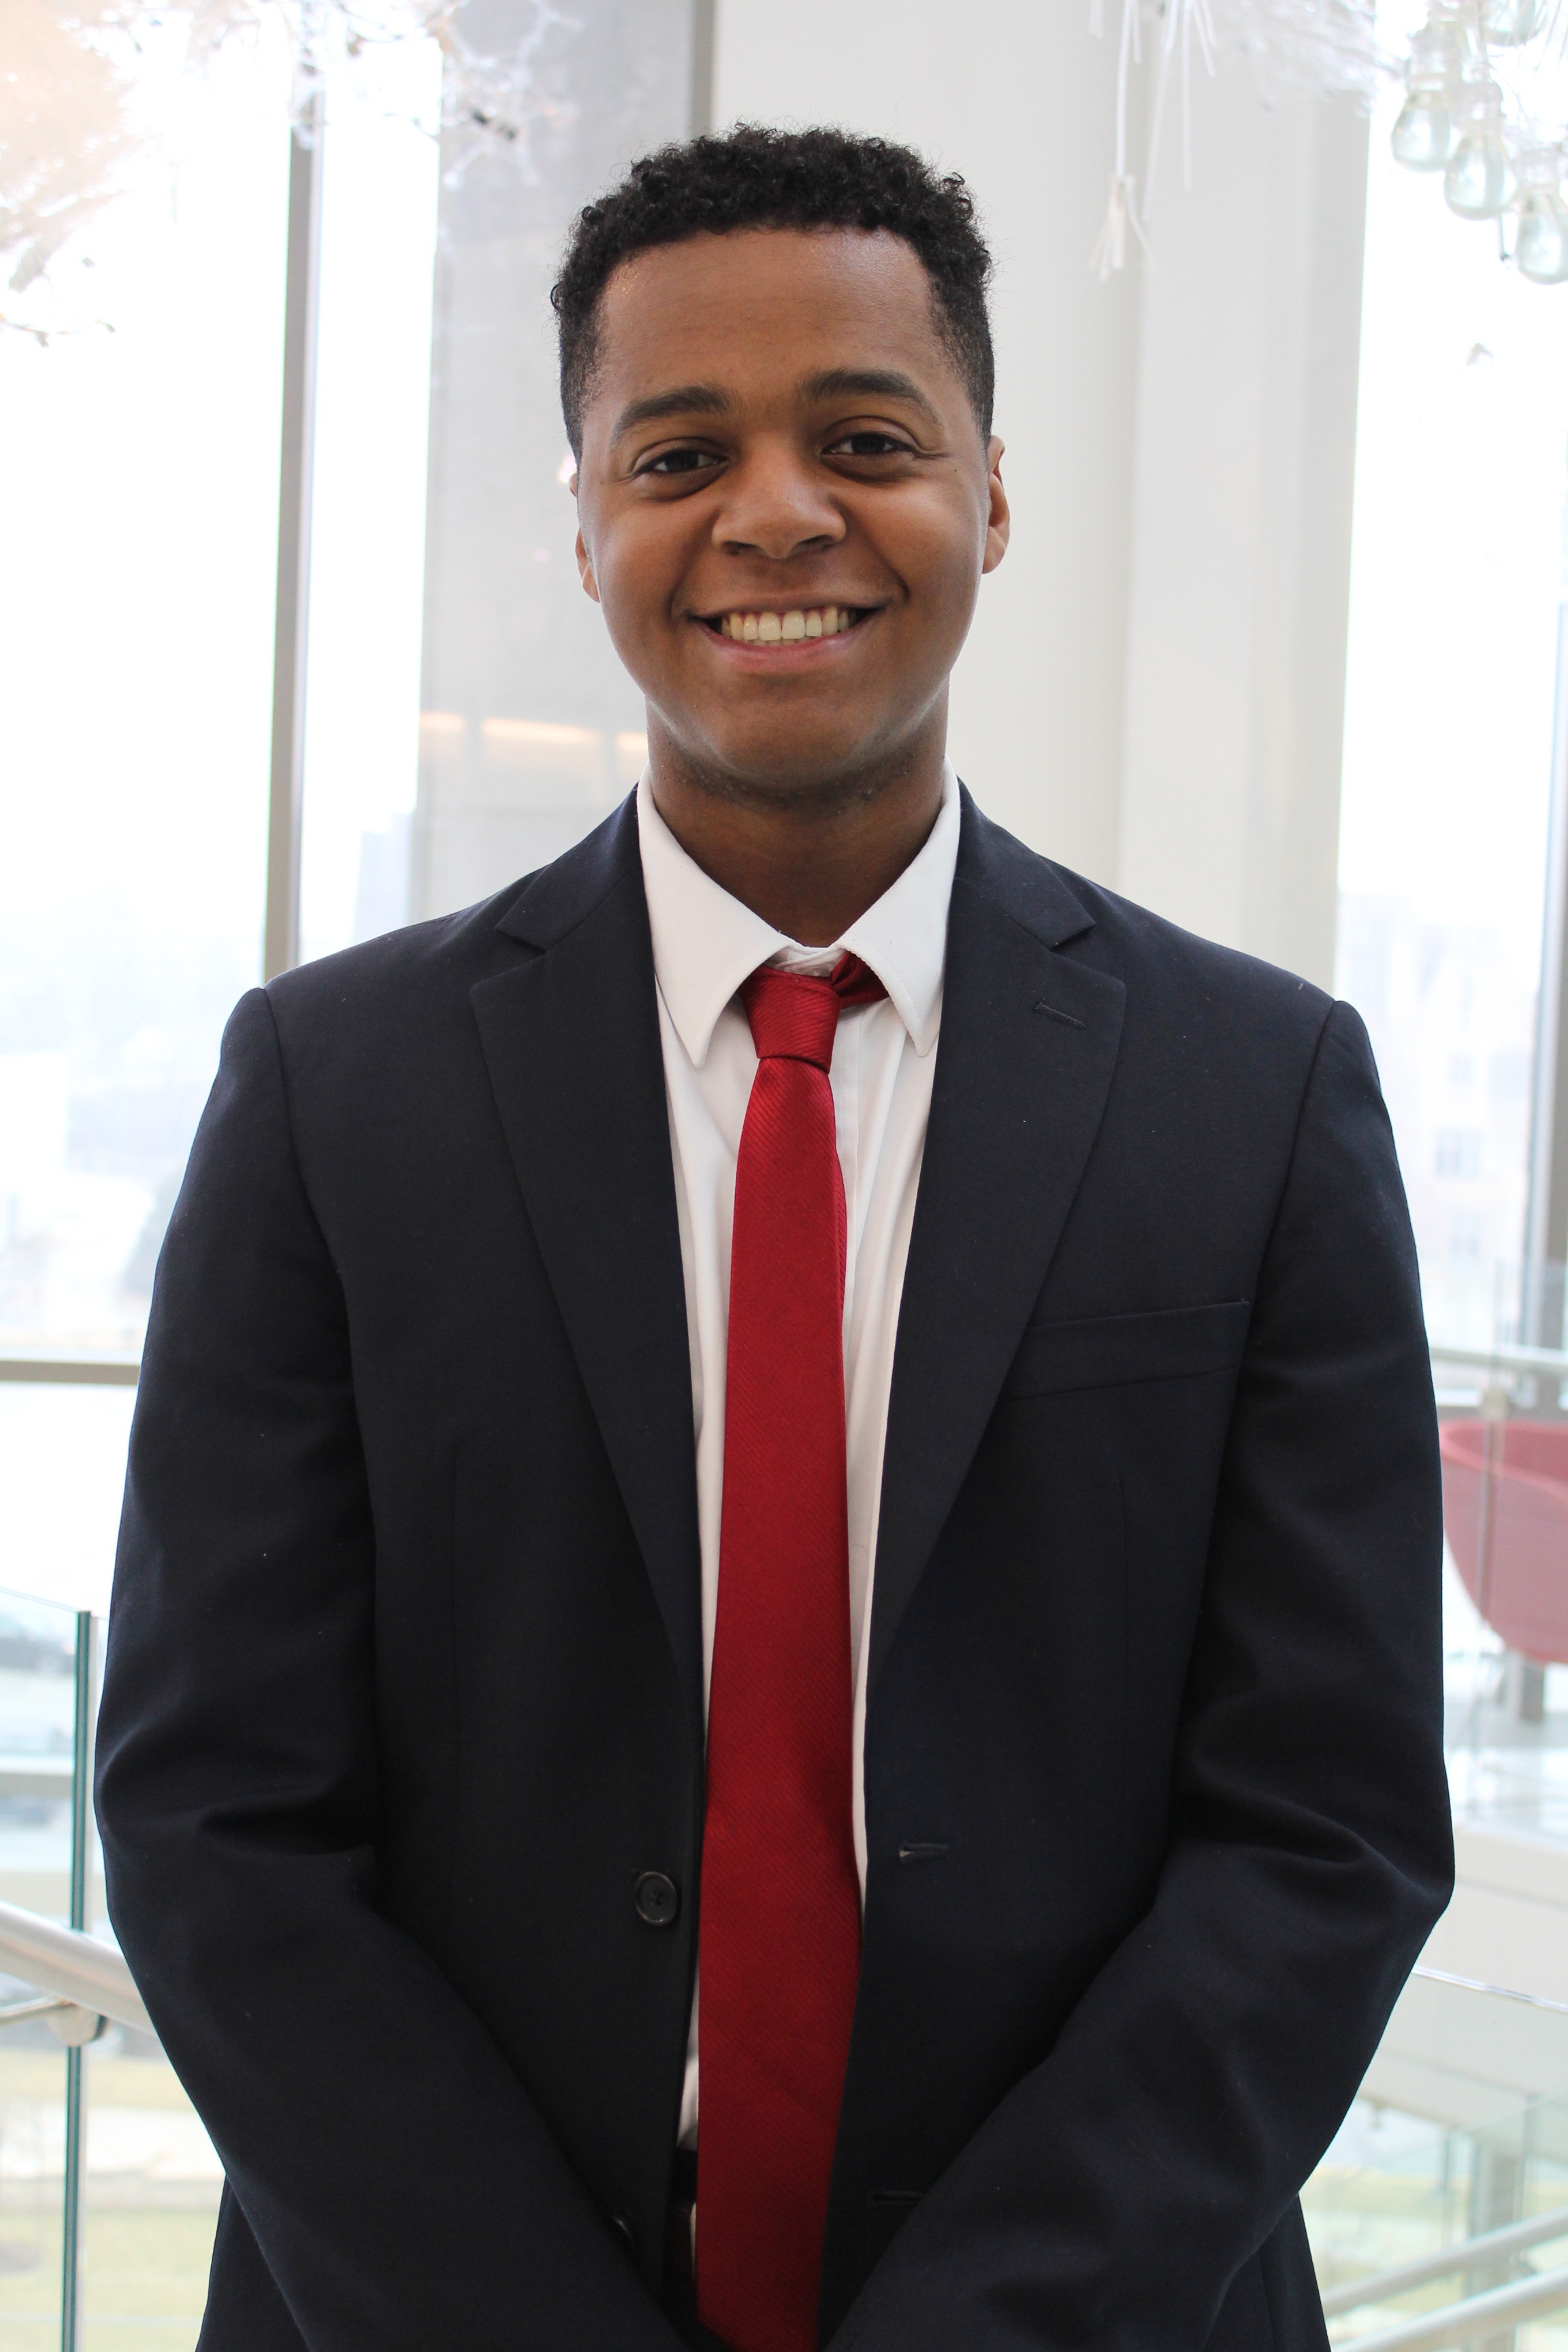 Michael Hudson:Policy Director - Michael Hudson is from Cincinnati, Ohio. Michael is a sophomore in the Kelley School of Business studying Finance, Operations Management, and International Business with a minor in Spanish. Michael is super passionate about increasing the diversity among campus, and making sure that every student feels welcomed and accepted here at IU! Last year, he also had the opportunity to serve as an IUSG Freshman Intern to the President. Michael is also involved in IUDM, the professional business fraternity Phi Gamma Nu, and in Alternative Break Program in Kelley, where he had the chance to volunteer in Ghana. Michael believes that every student on campus should have a voice in the decisions made on campus, and it is his vision to create a more welcoming and inclusive campus.